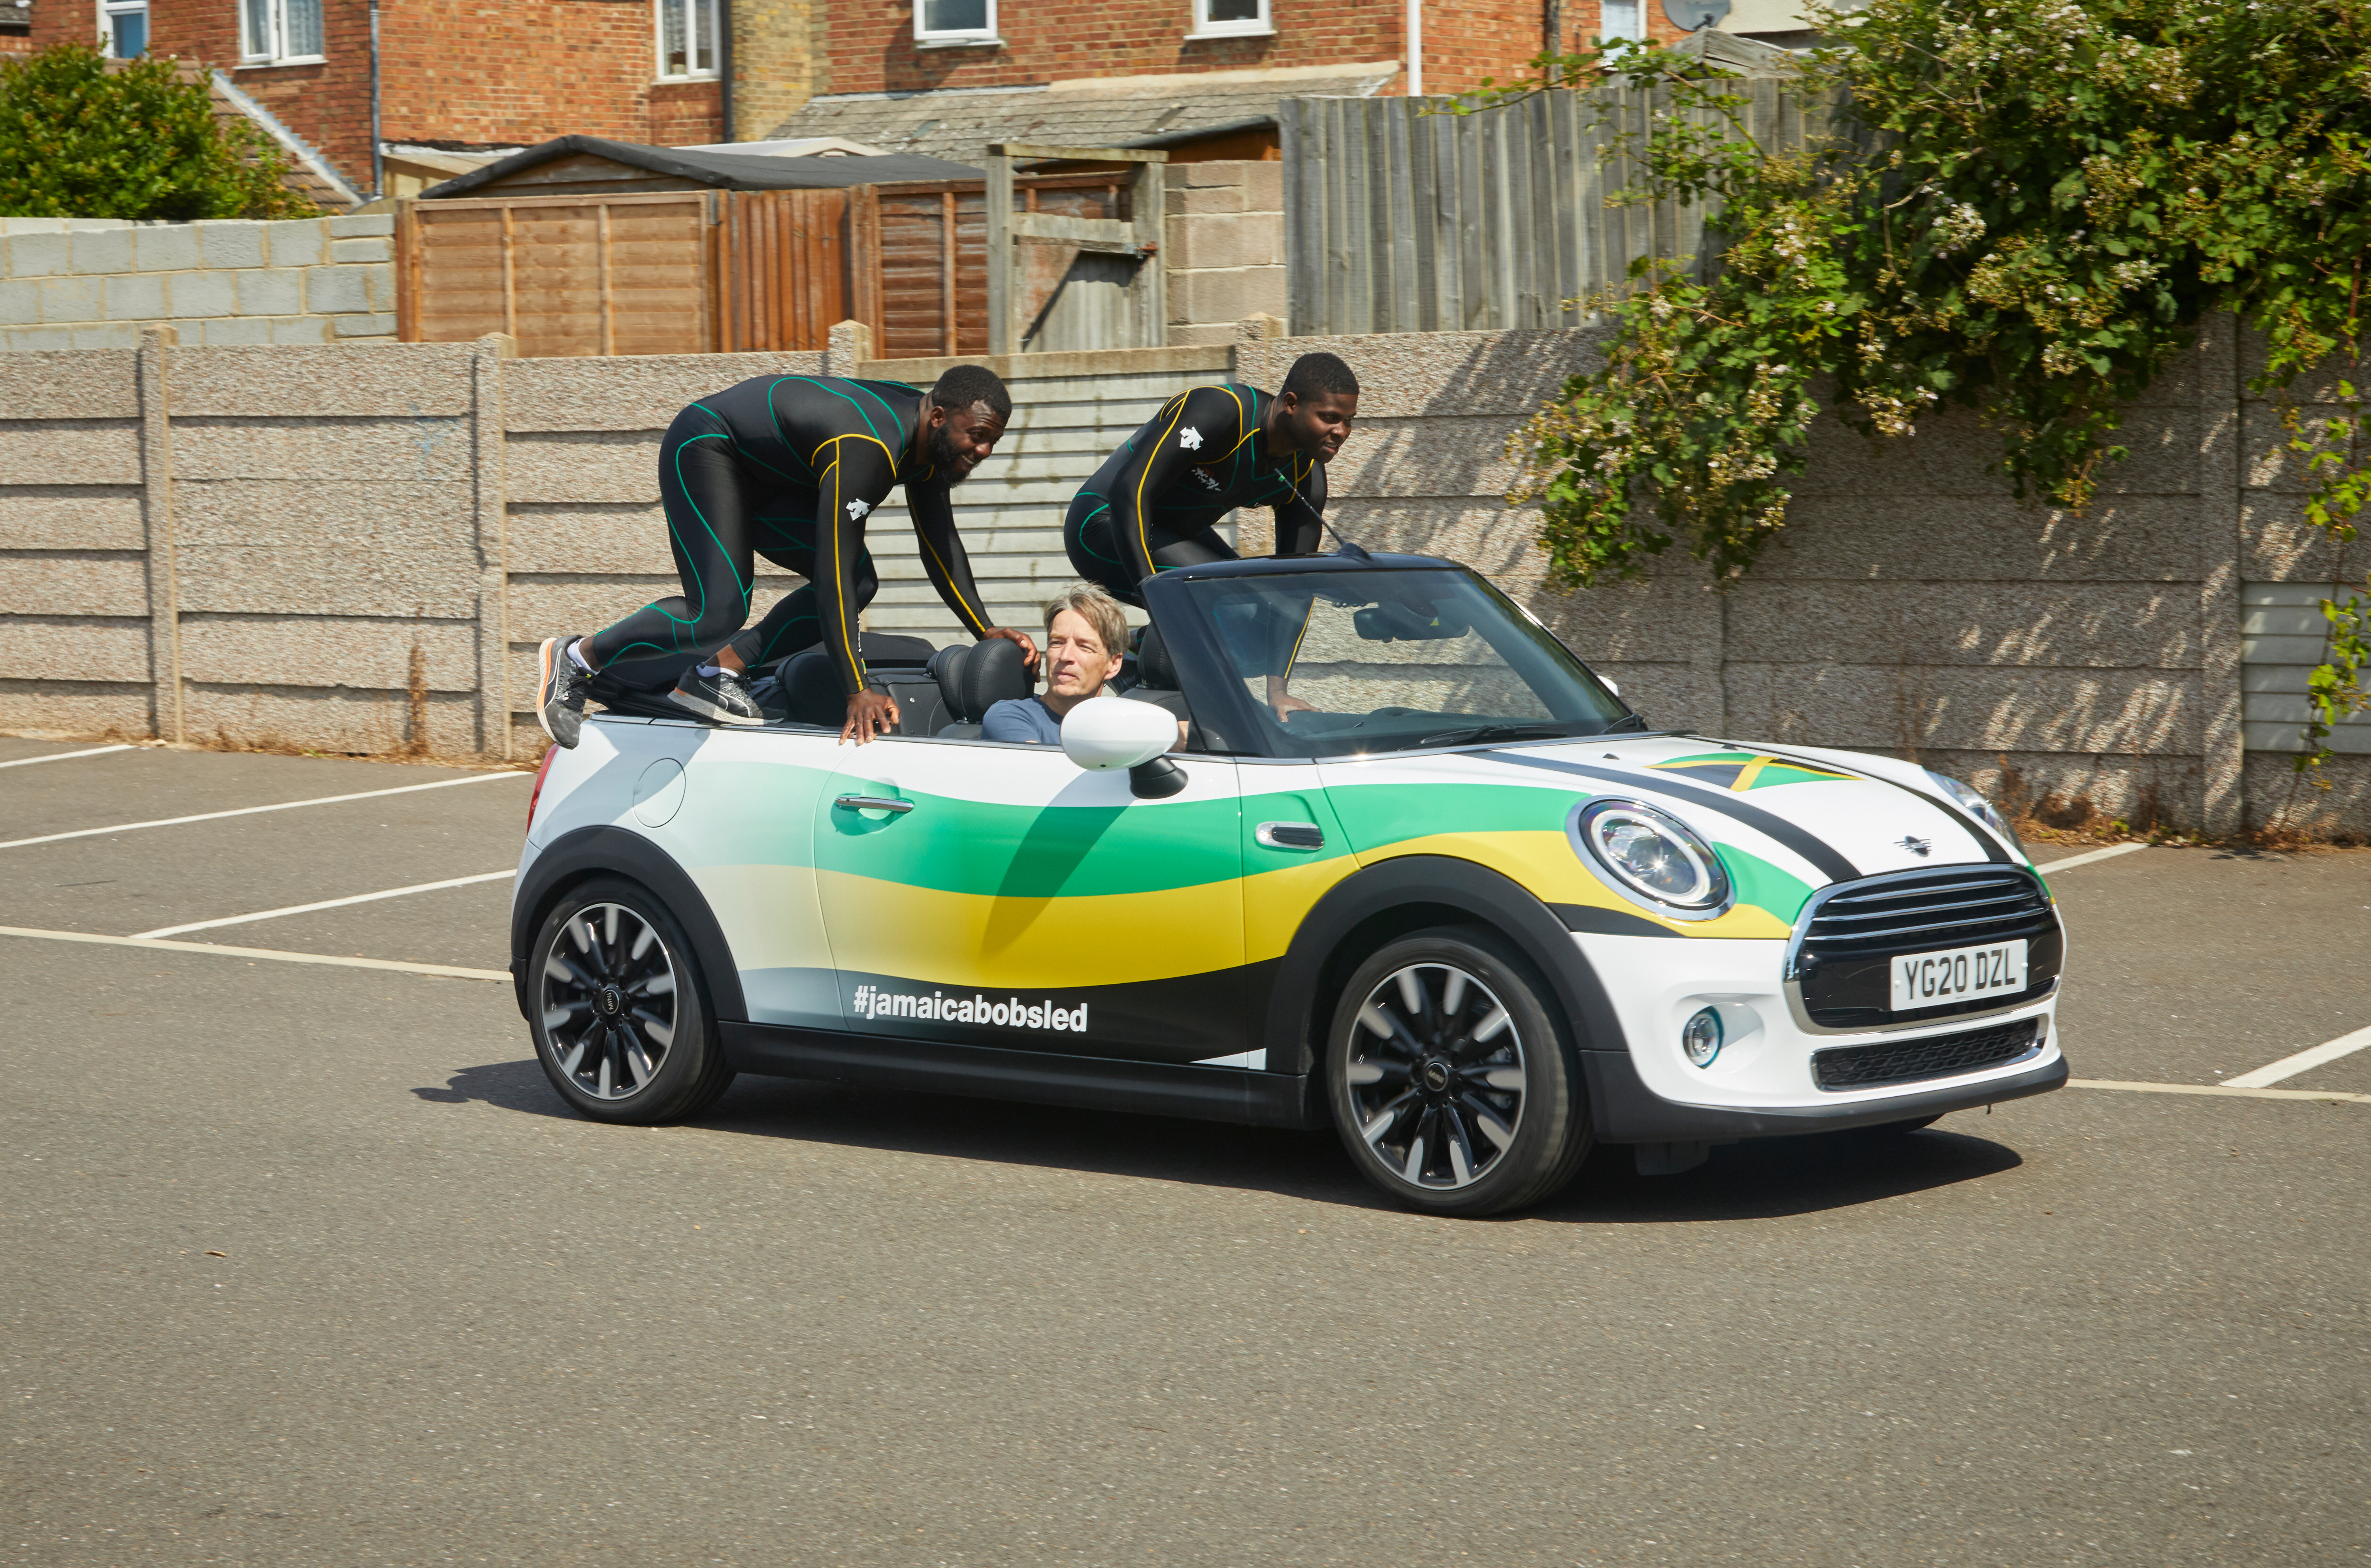 Jamaica's bobsled duo push a Mini convertible during lockdown to train for Winter Olympics